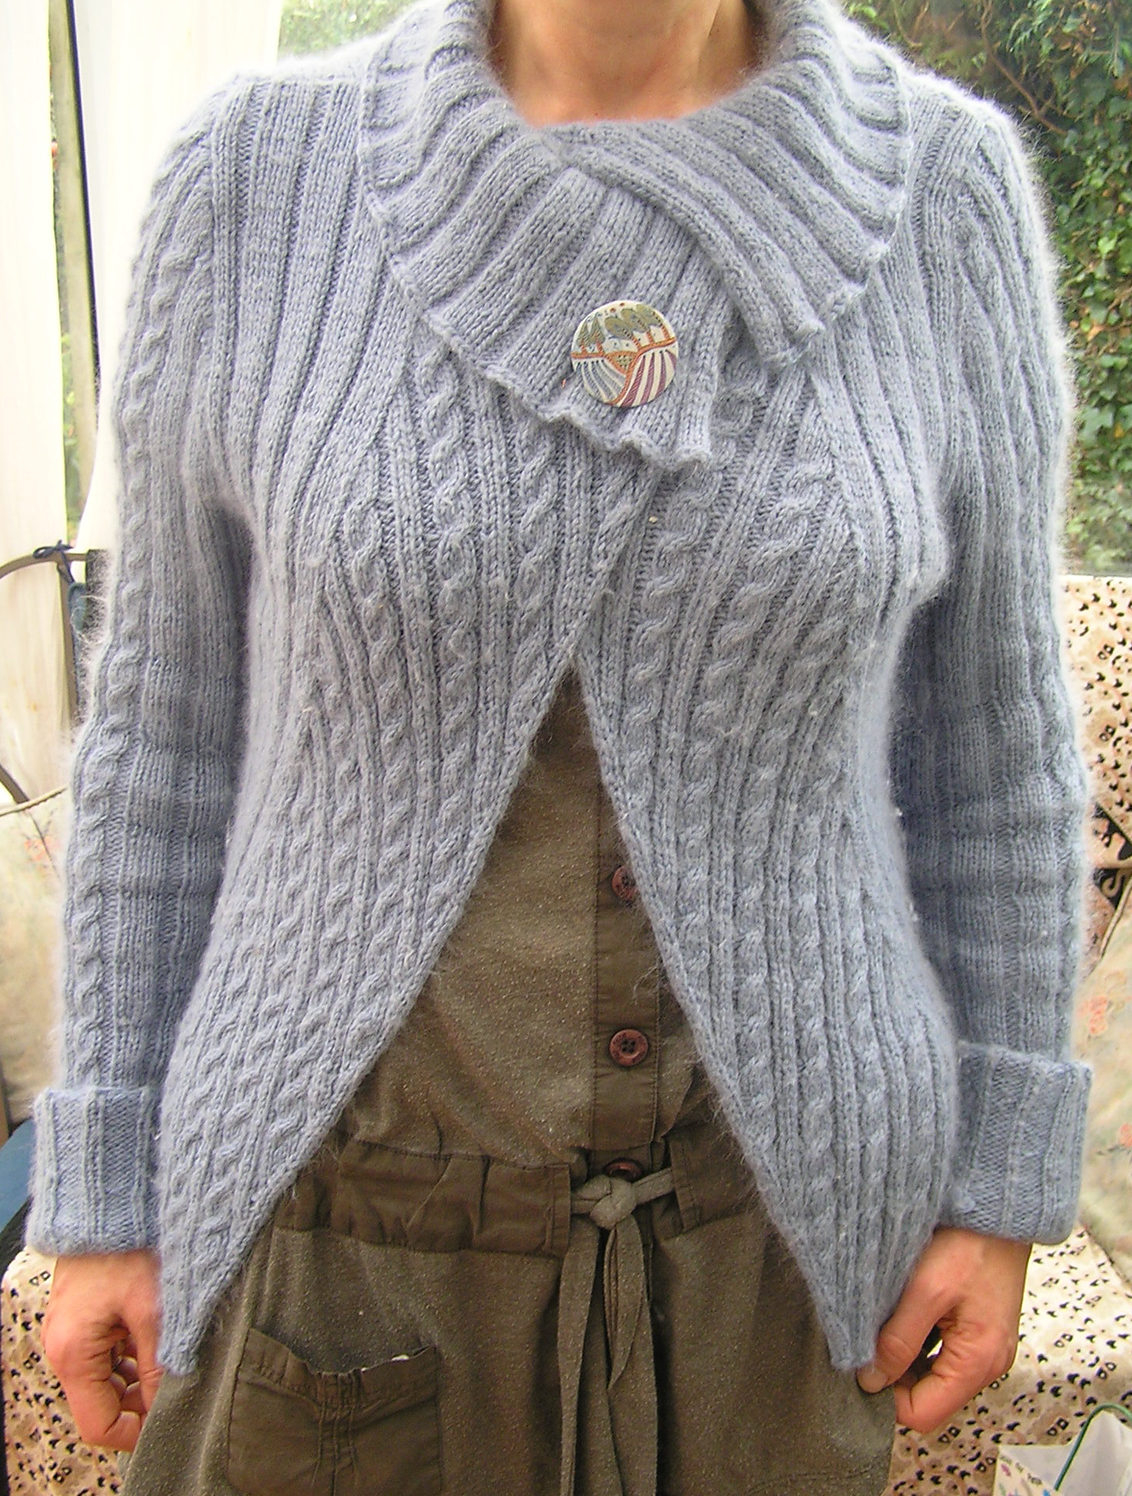 Knitted Jacket Patterns Wrap Cardigan Knitting Patterns In The Loop Knitting